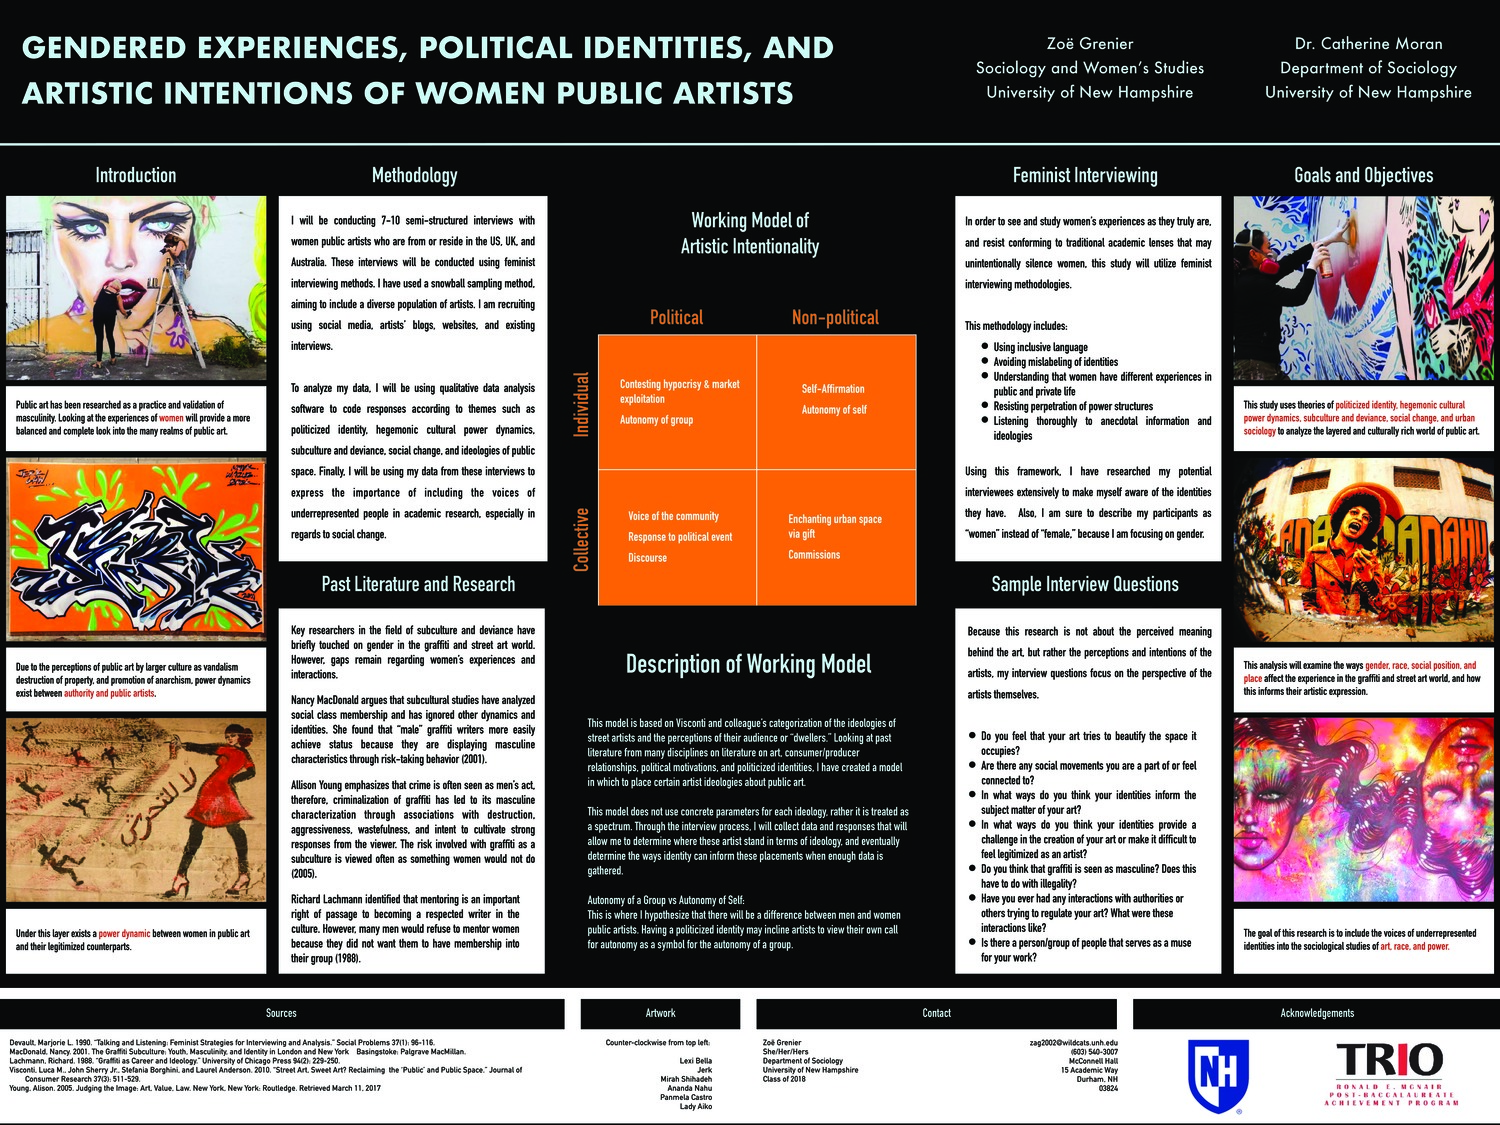 Gendered Experiences, Political Identities, And Artistic Intentions Of Women Public Artists by zag2002